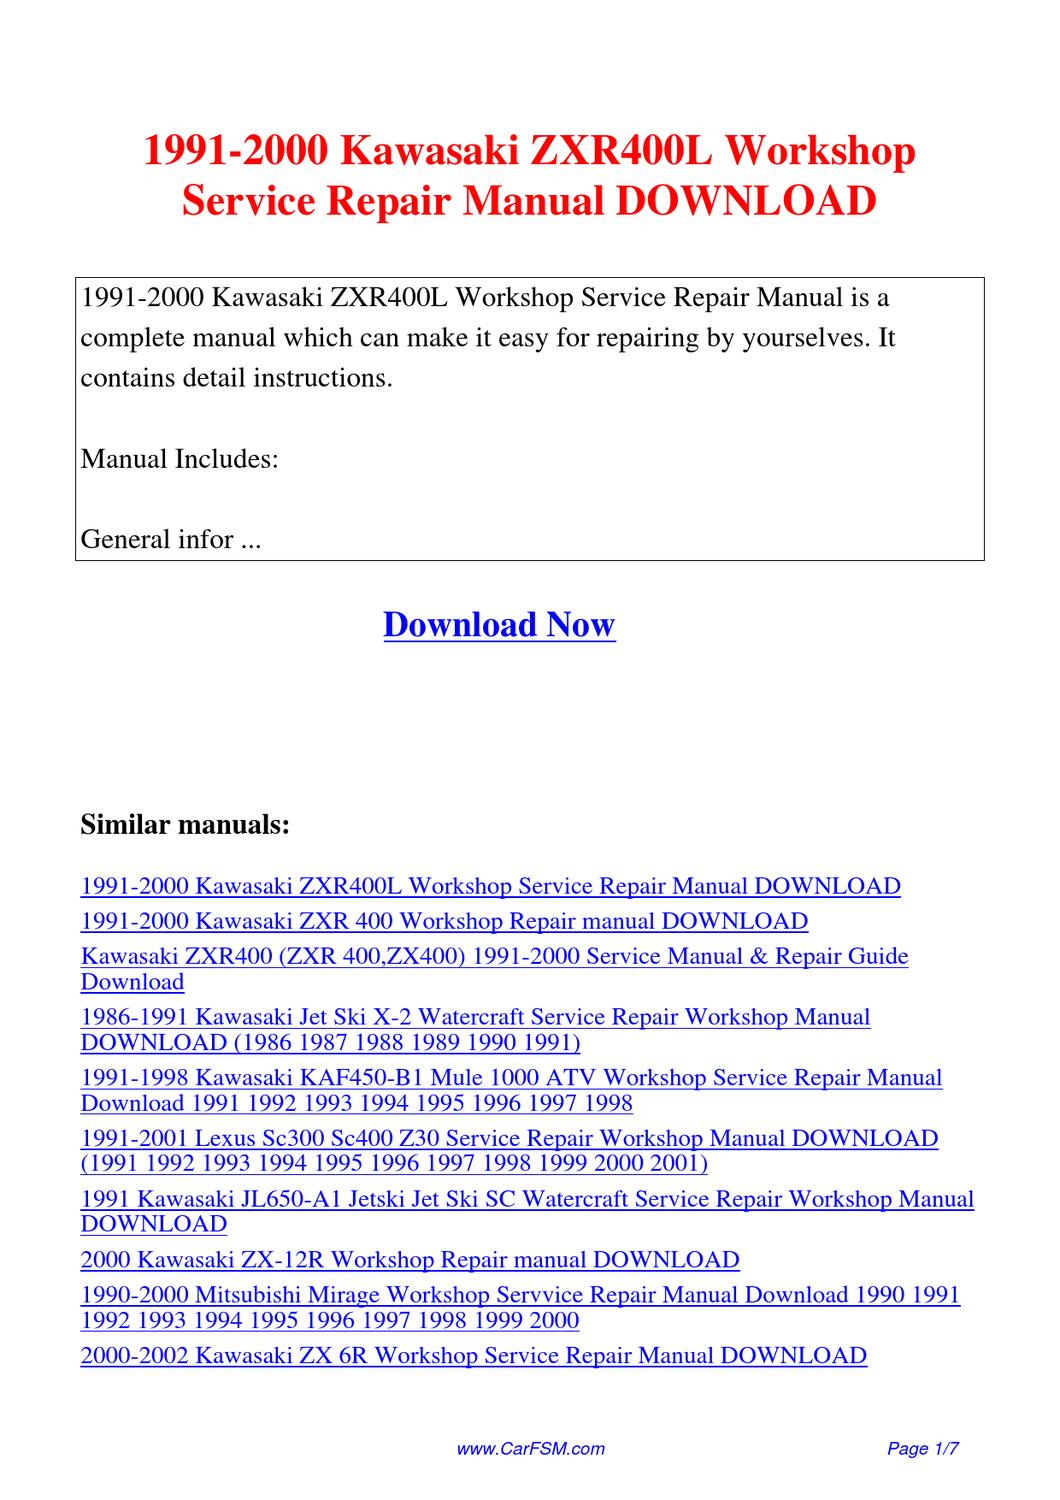 Kawasaki Kaf450 Mule 1000 1989 1997 Factory Repair Manual Auto Renault Workshop Service Wiring Diagram 2012 Pack 1991